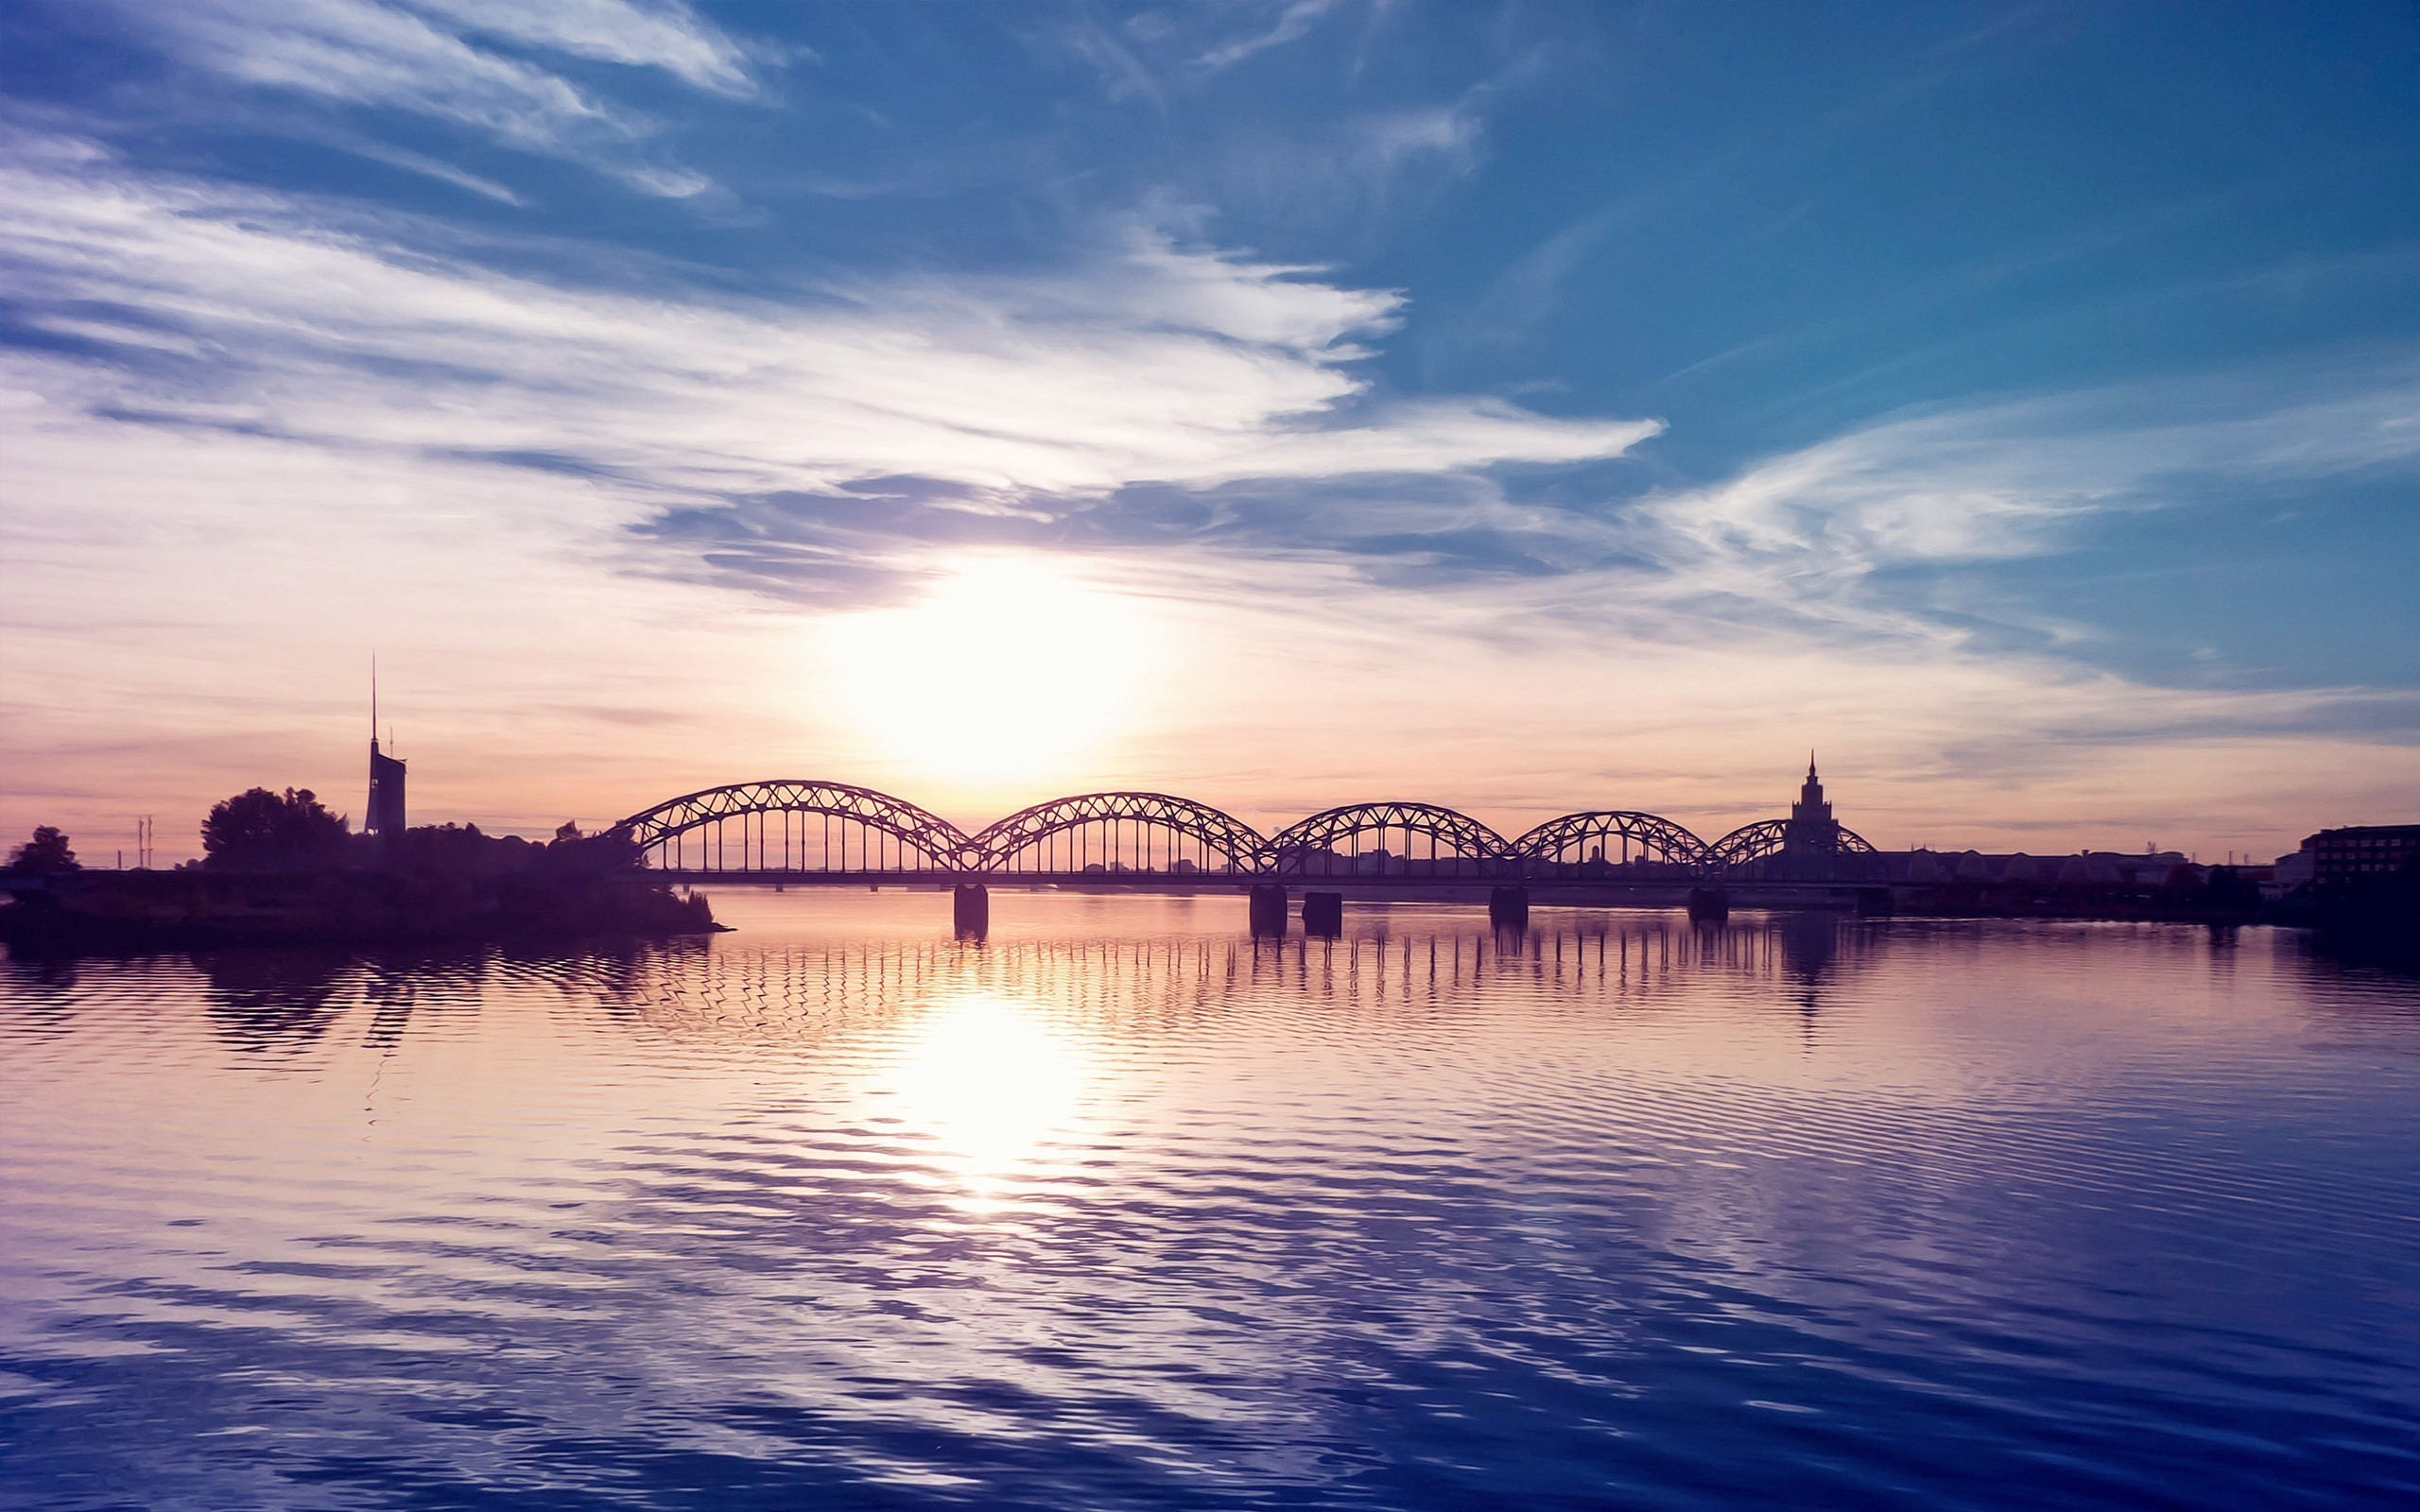 nature, Water, Bridge, Architecture, Sunset, Clouds, Sky, Reflection  Wallpapers HD / Desktop and Mobile Backgrounds